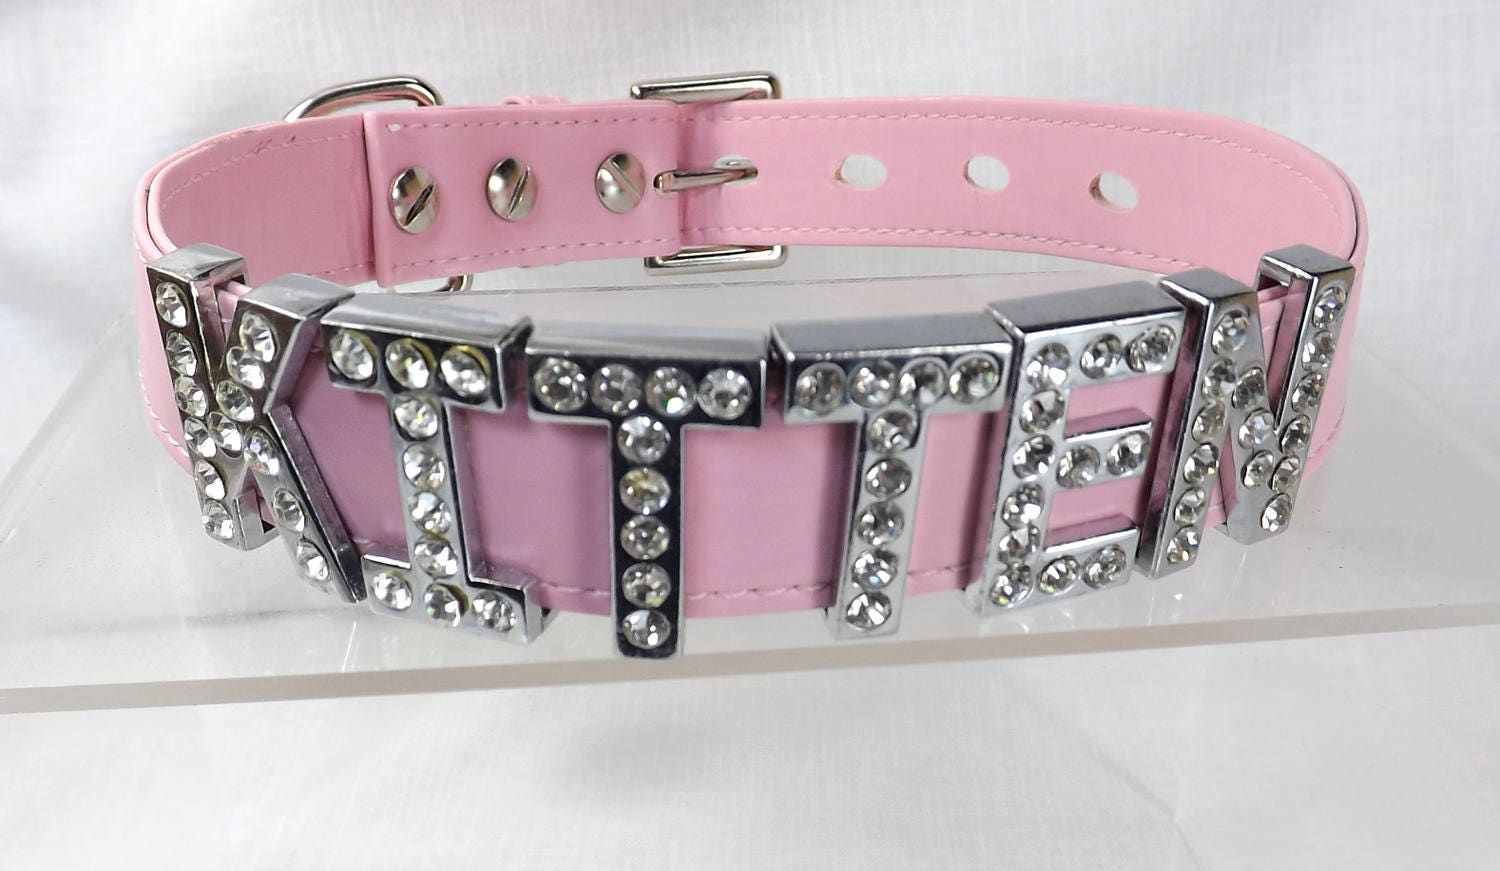 kitten play collar bdsm locking slave collar with lock Rhinestone letters ddlg pet play collar submissive collar kitten choker - product image